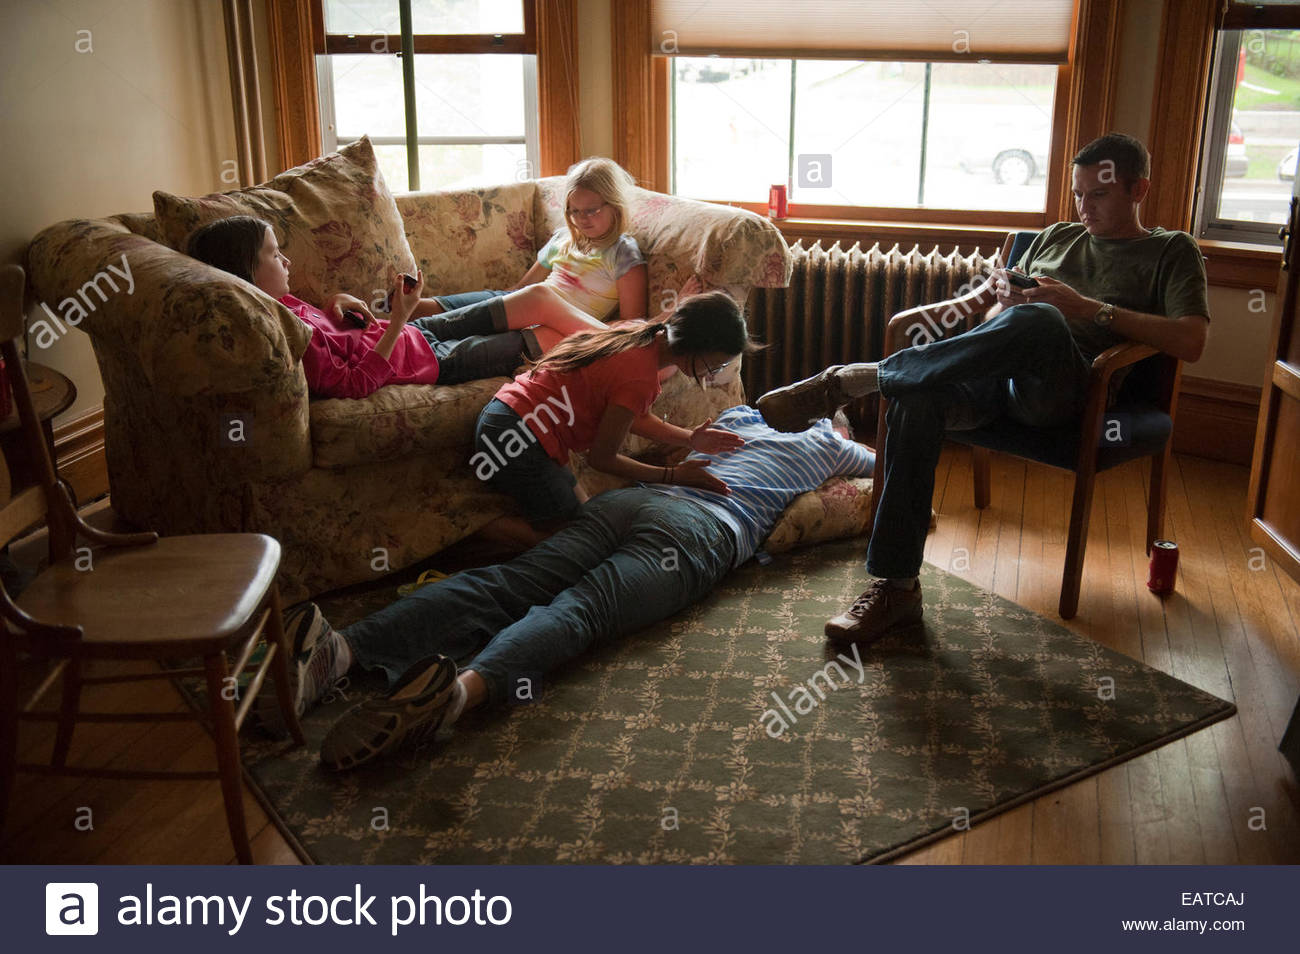 A family spends time together. - Stock Image